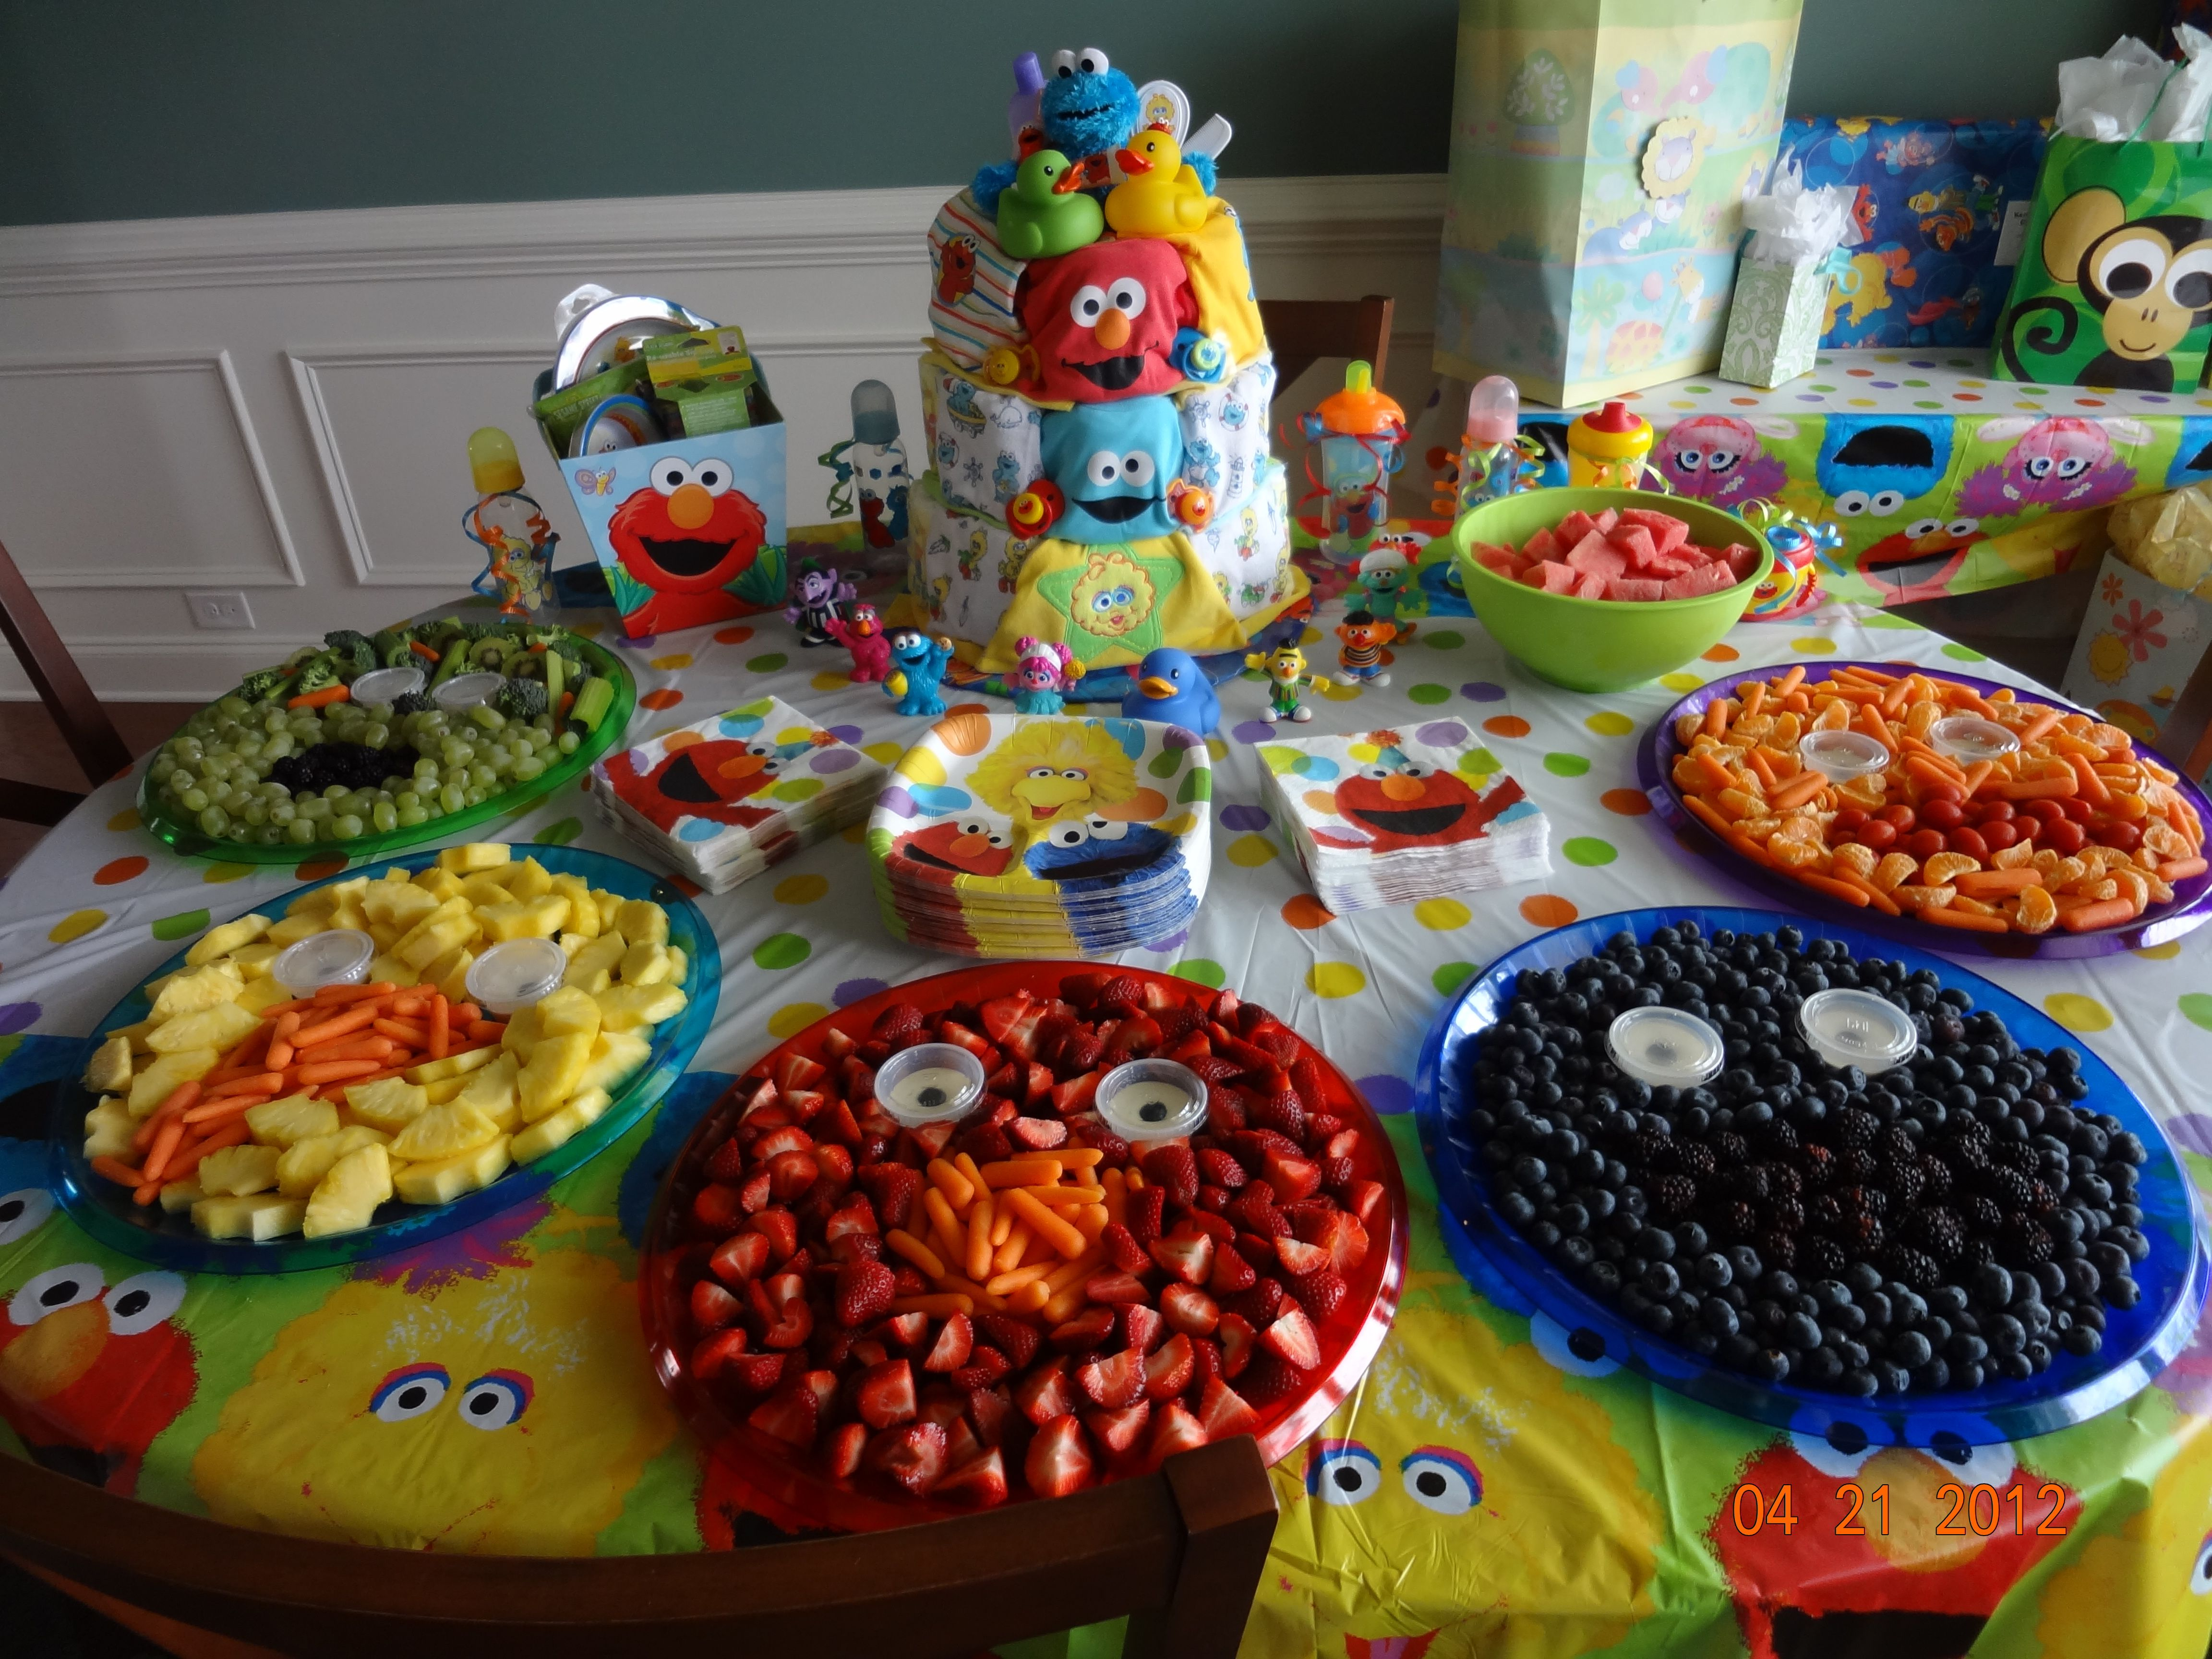 Birthday Party Table Decoration Ideas For Kids - Find this pin and more on healthy kids party food and games sesame street party fruit trays and table decorations